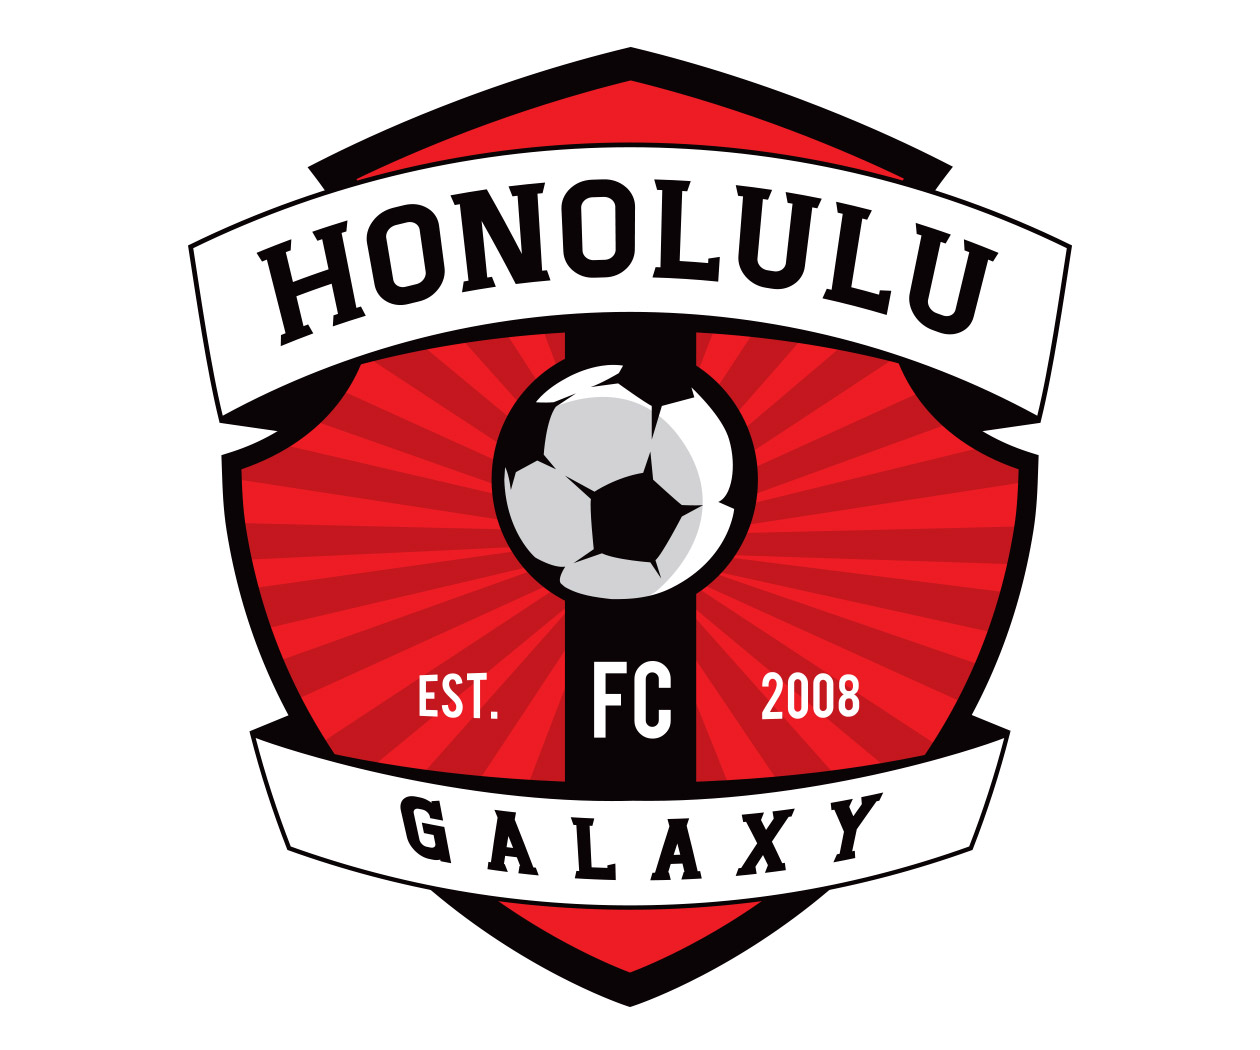 custom soccer logo design for the honolulu galaxy by jordan fretz design